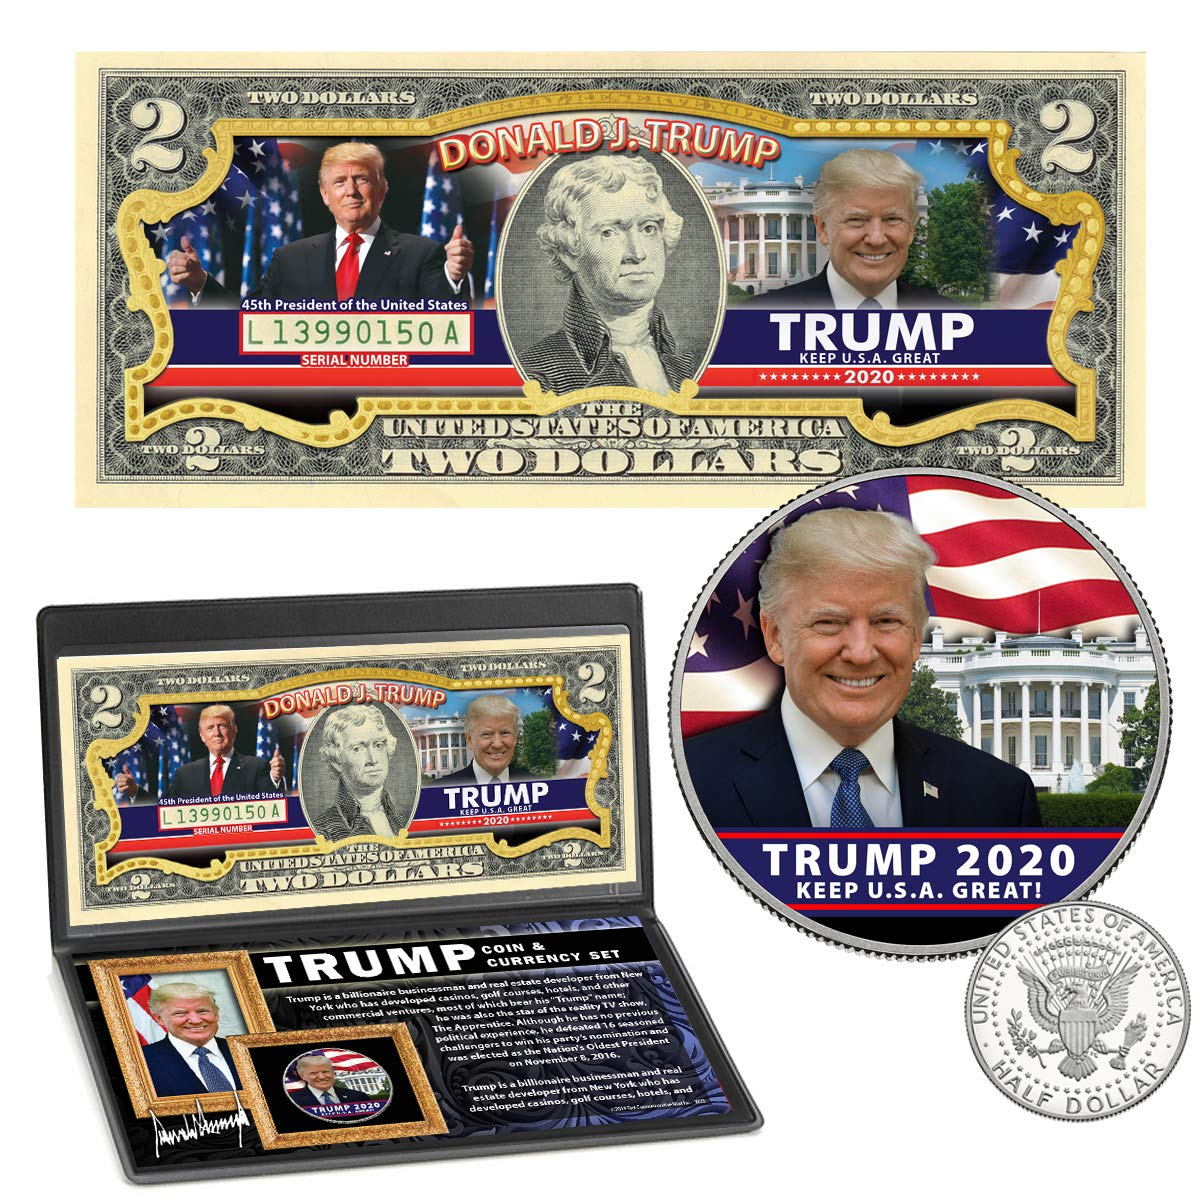 President Donald Trump 2020 Genuine $2 Bill And Coin...